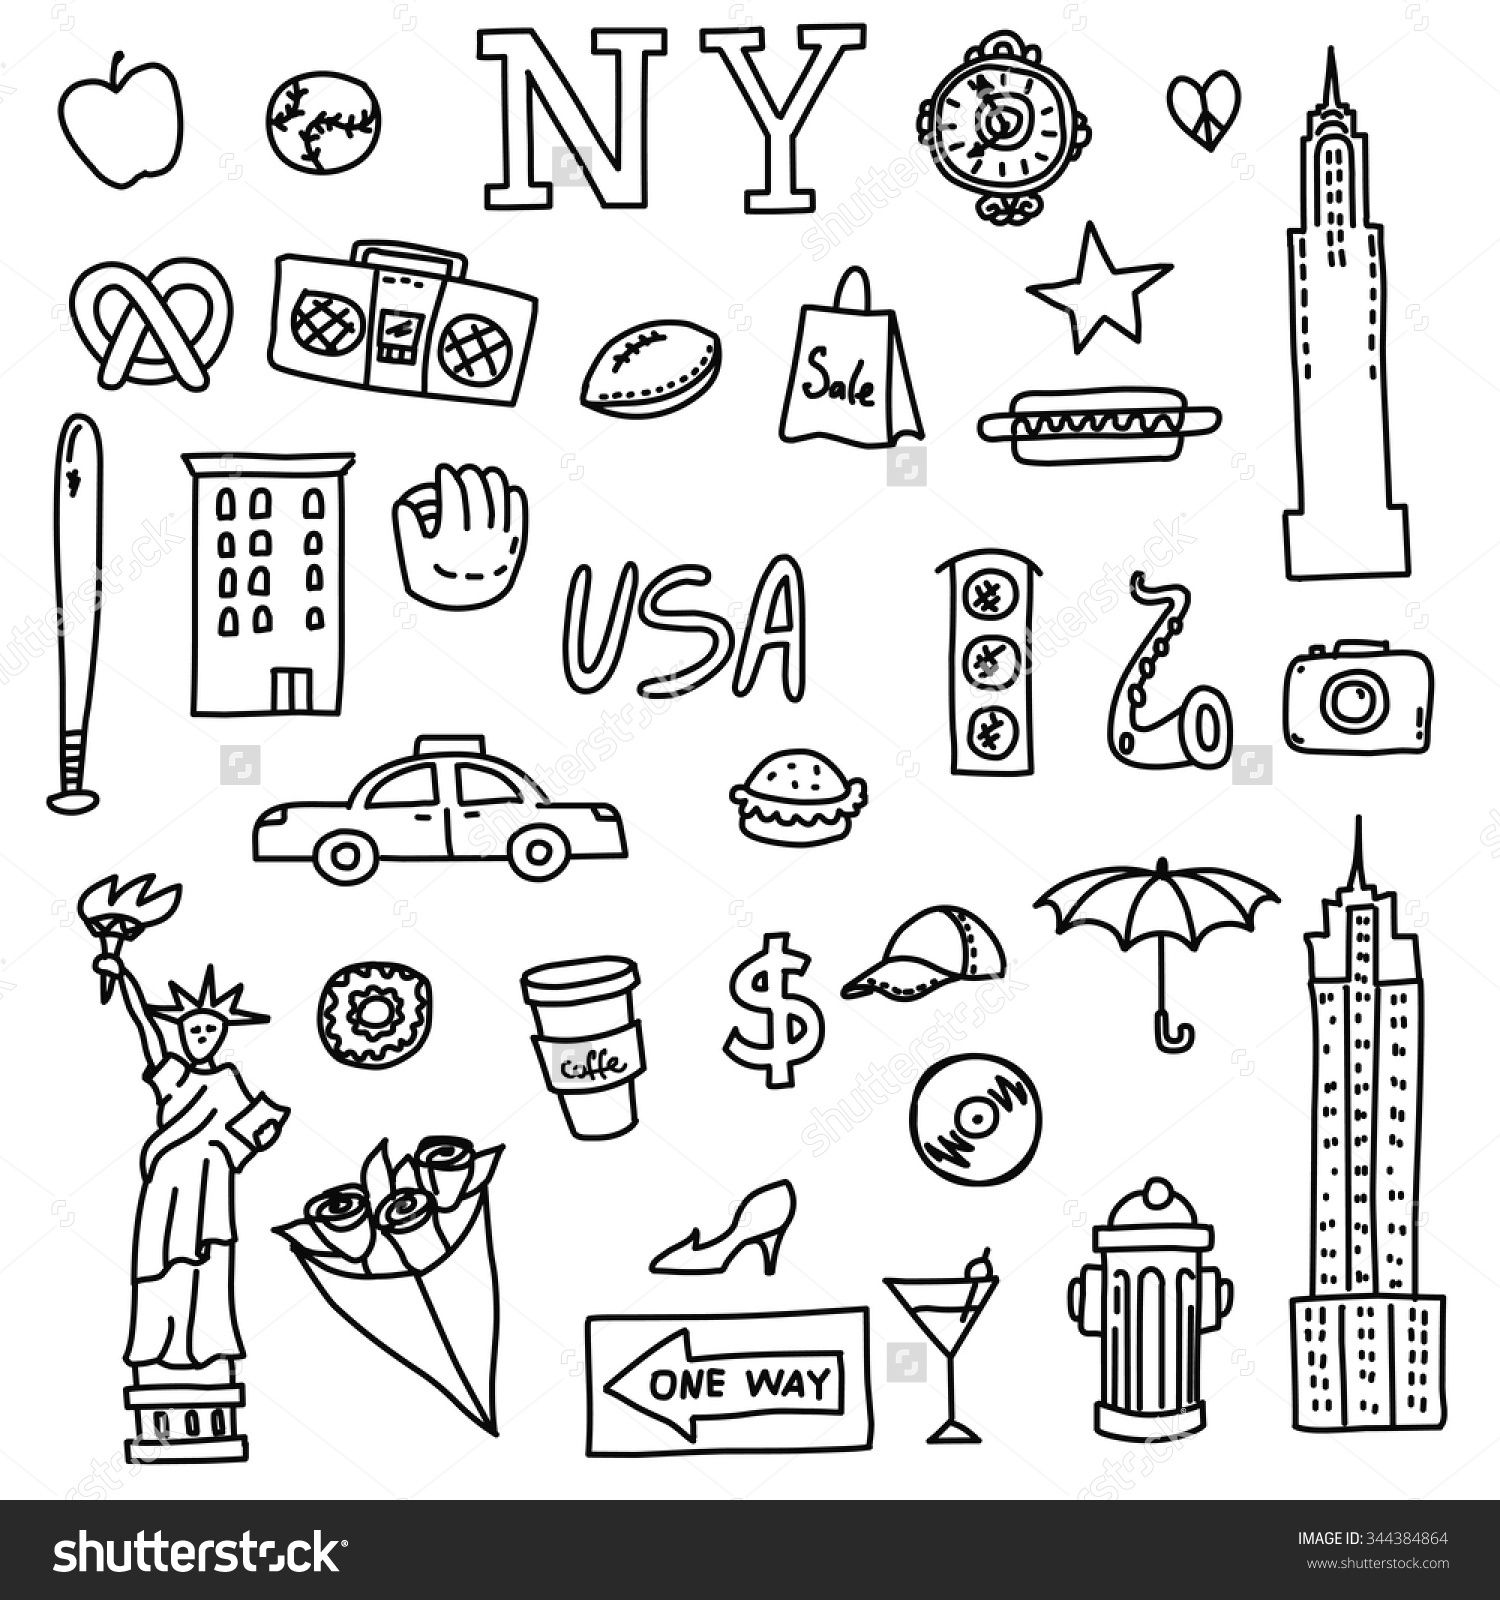 New york doodle line set hand drawn elements american travel new york doodle line set american travel symbols buy this stock vector on shutterstock find other images buycottarizona Image collections